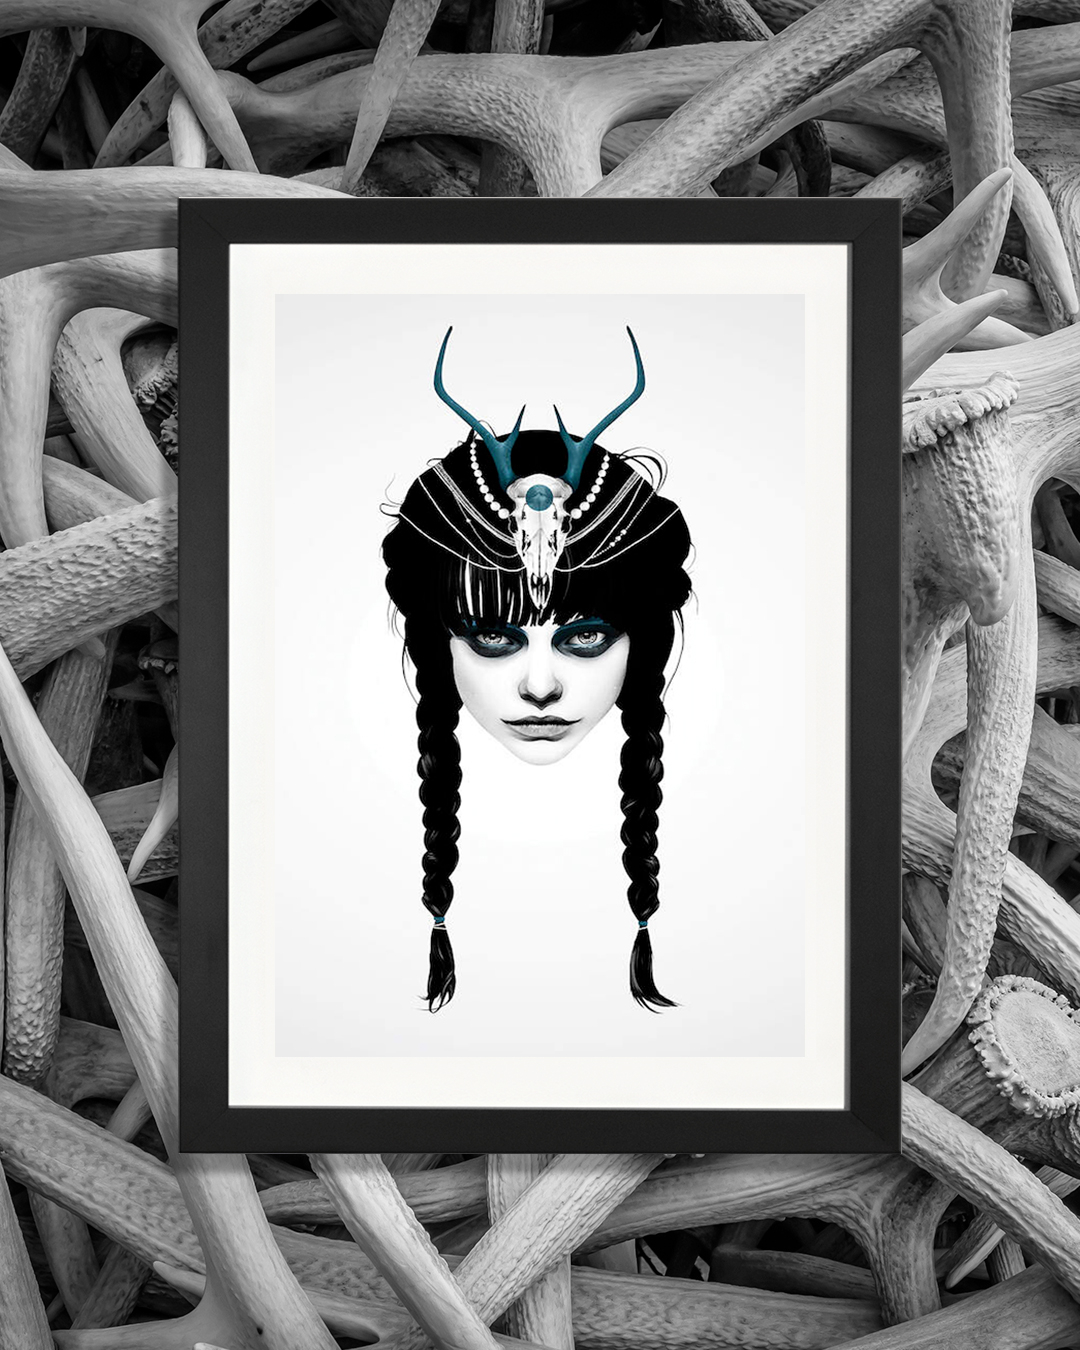 portrait of a girl wearing braids in her hair with an animal skull headpiece with blue antlers